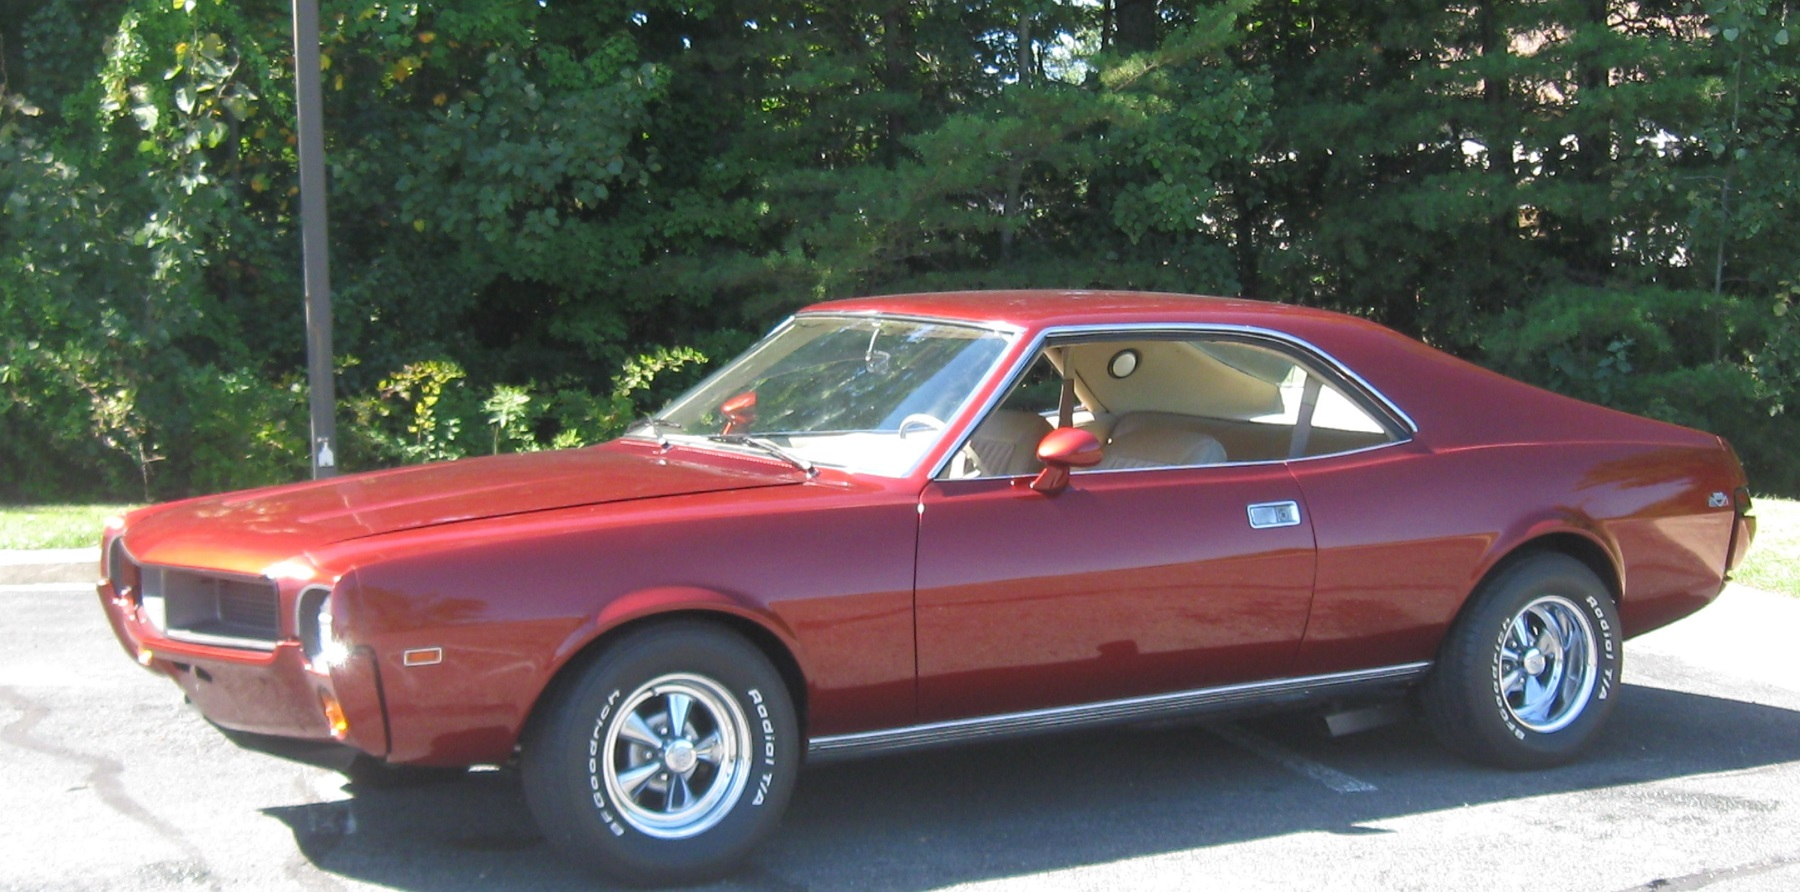 1968 Amc Javelin Memories Of High School Days Classic